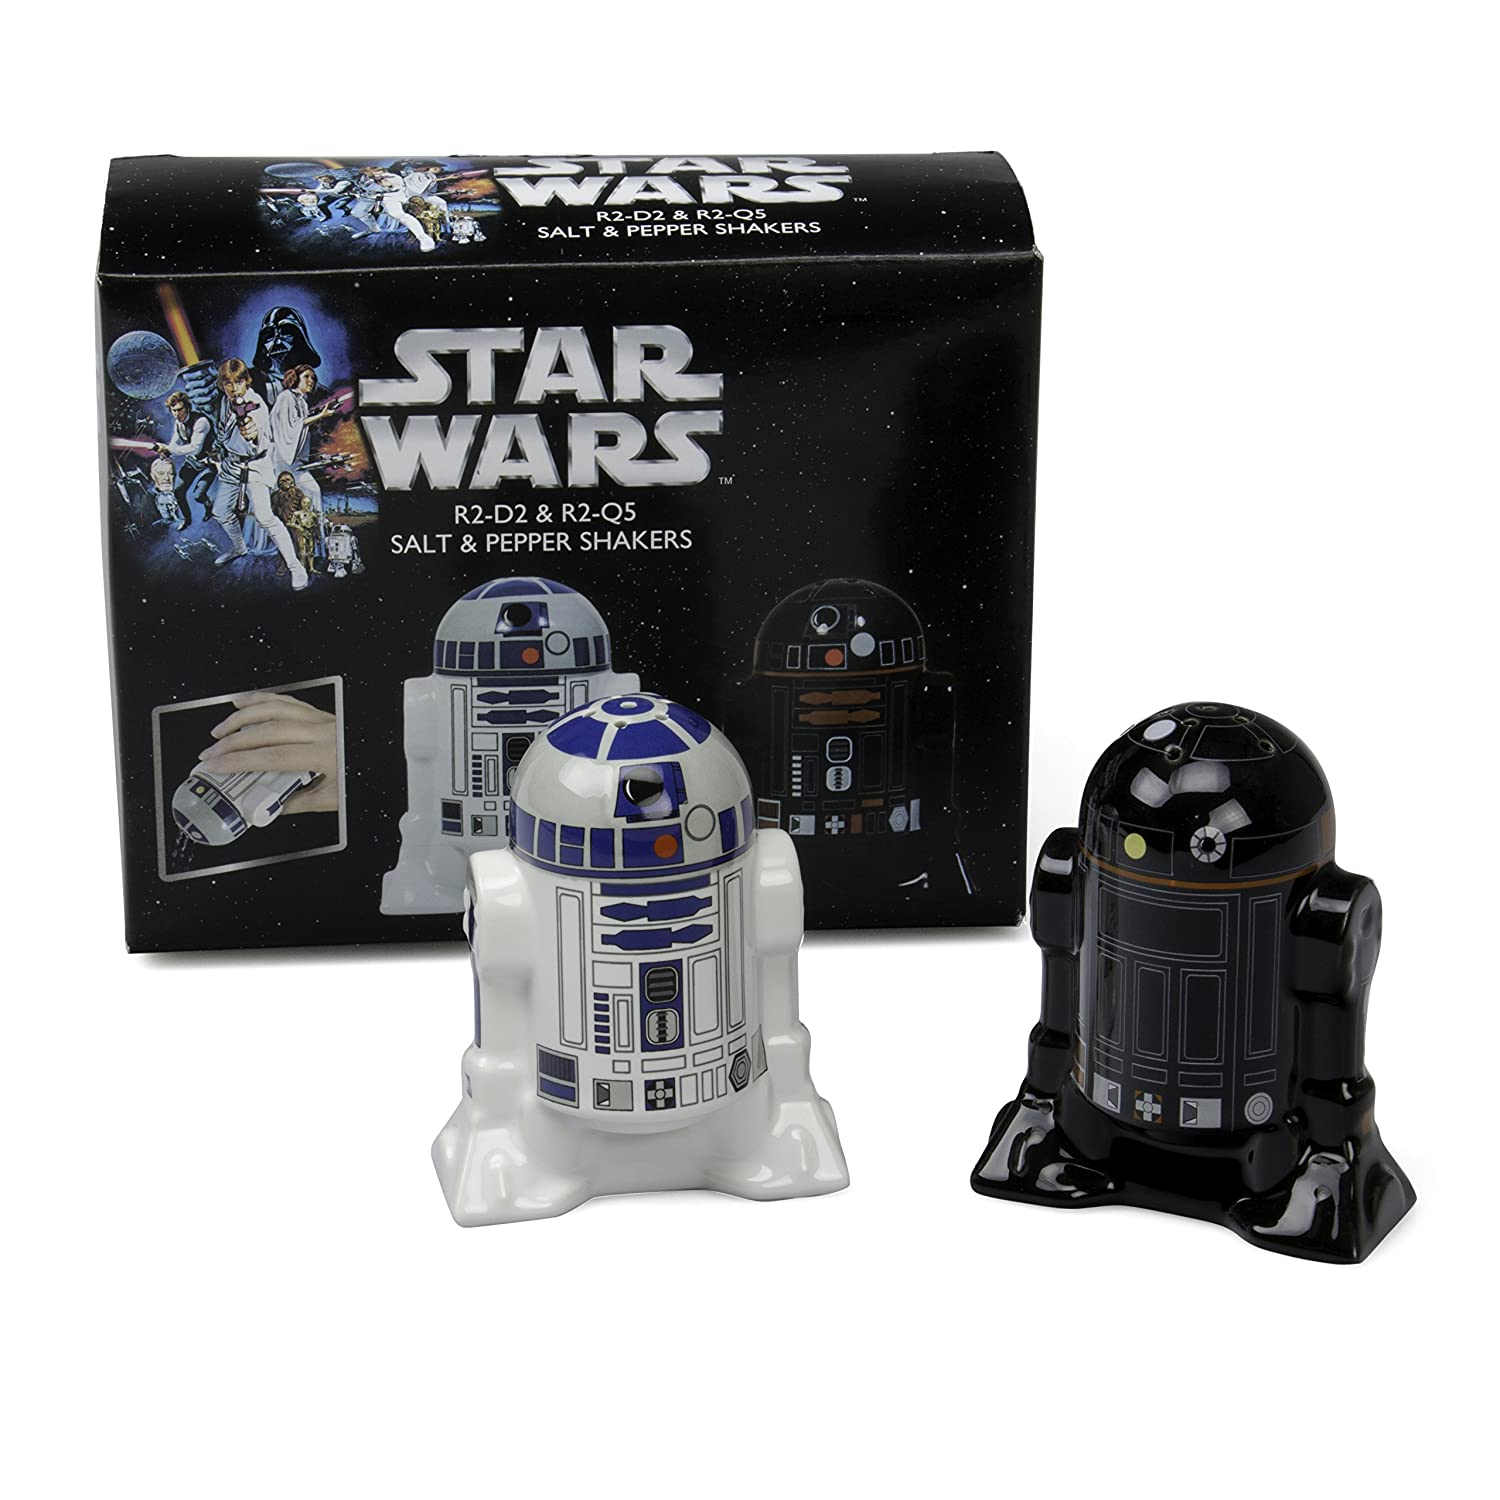 star wars ceramic salt and pepper shakers amazonca home  kitchen -